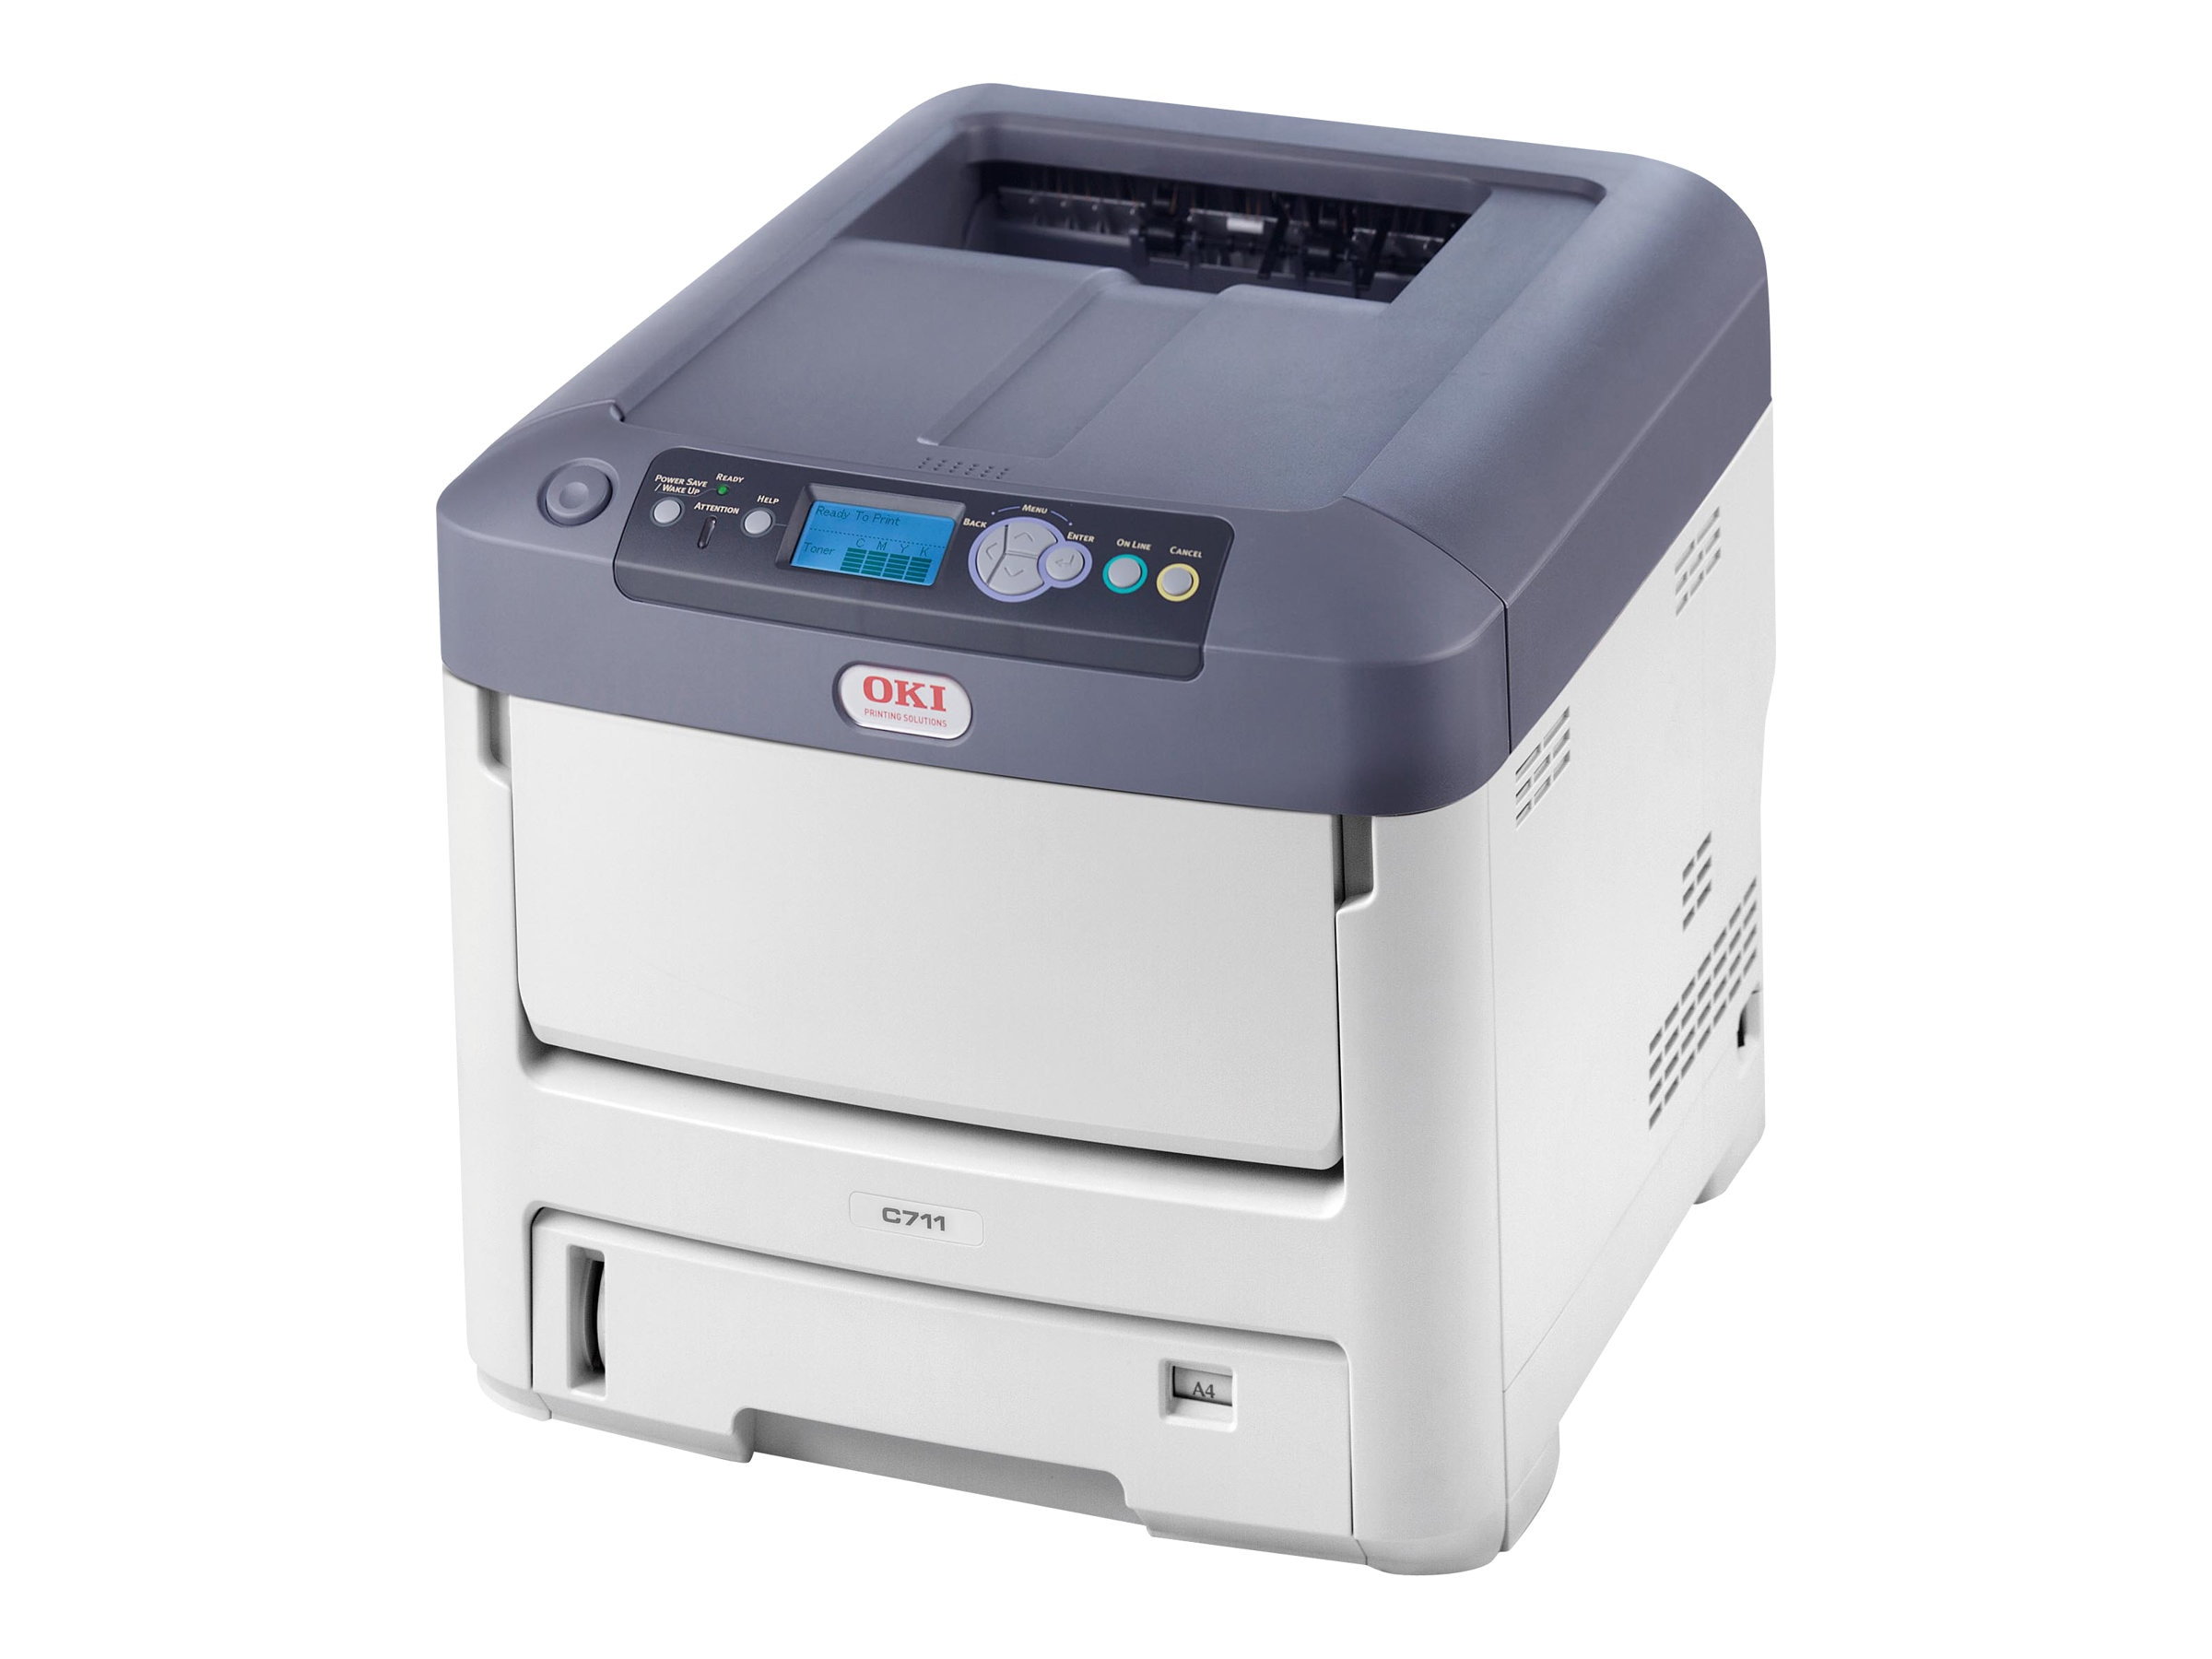 Oki C711dn Digital Color Printer (Multilingual)